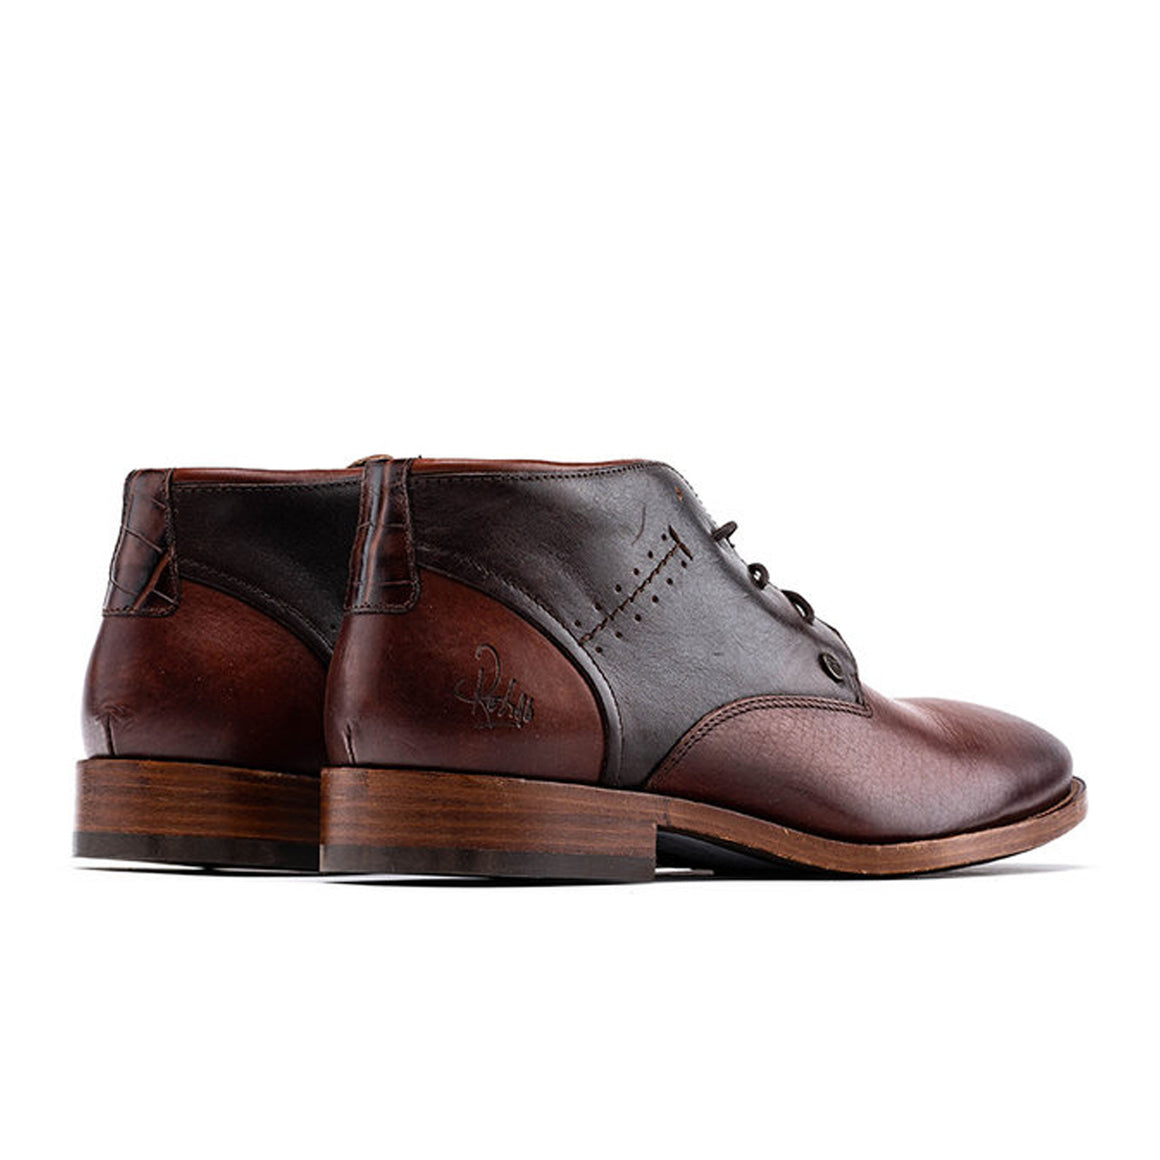 Salvador Classic for Men in Brown/Dk Brown